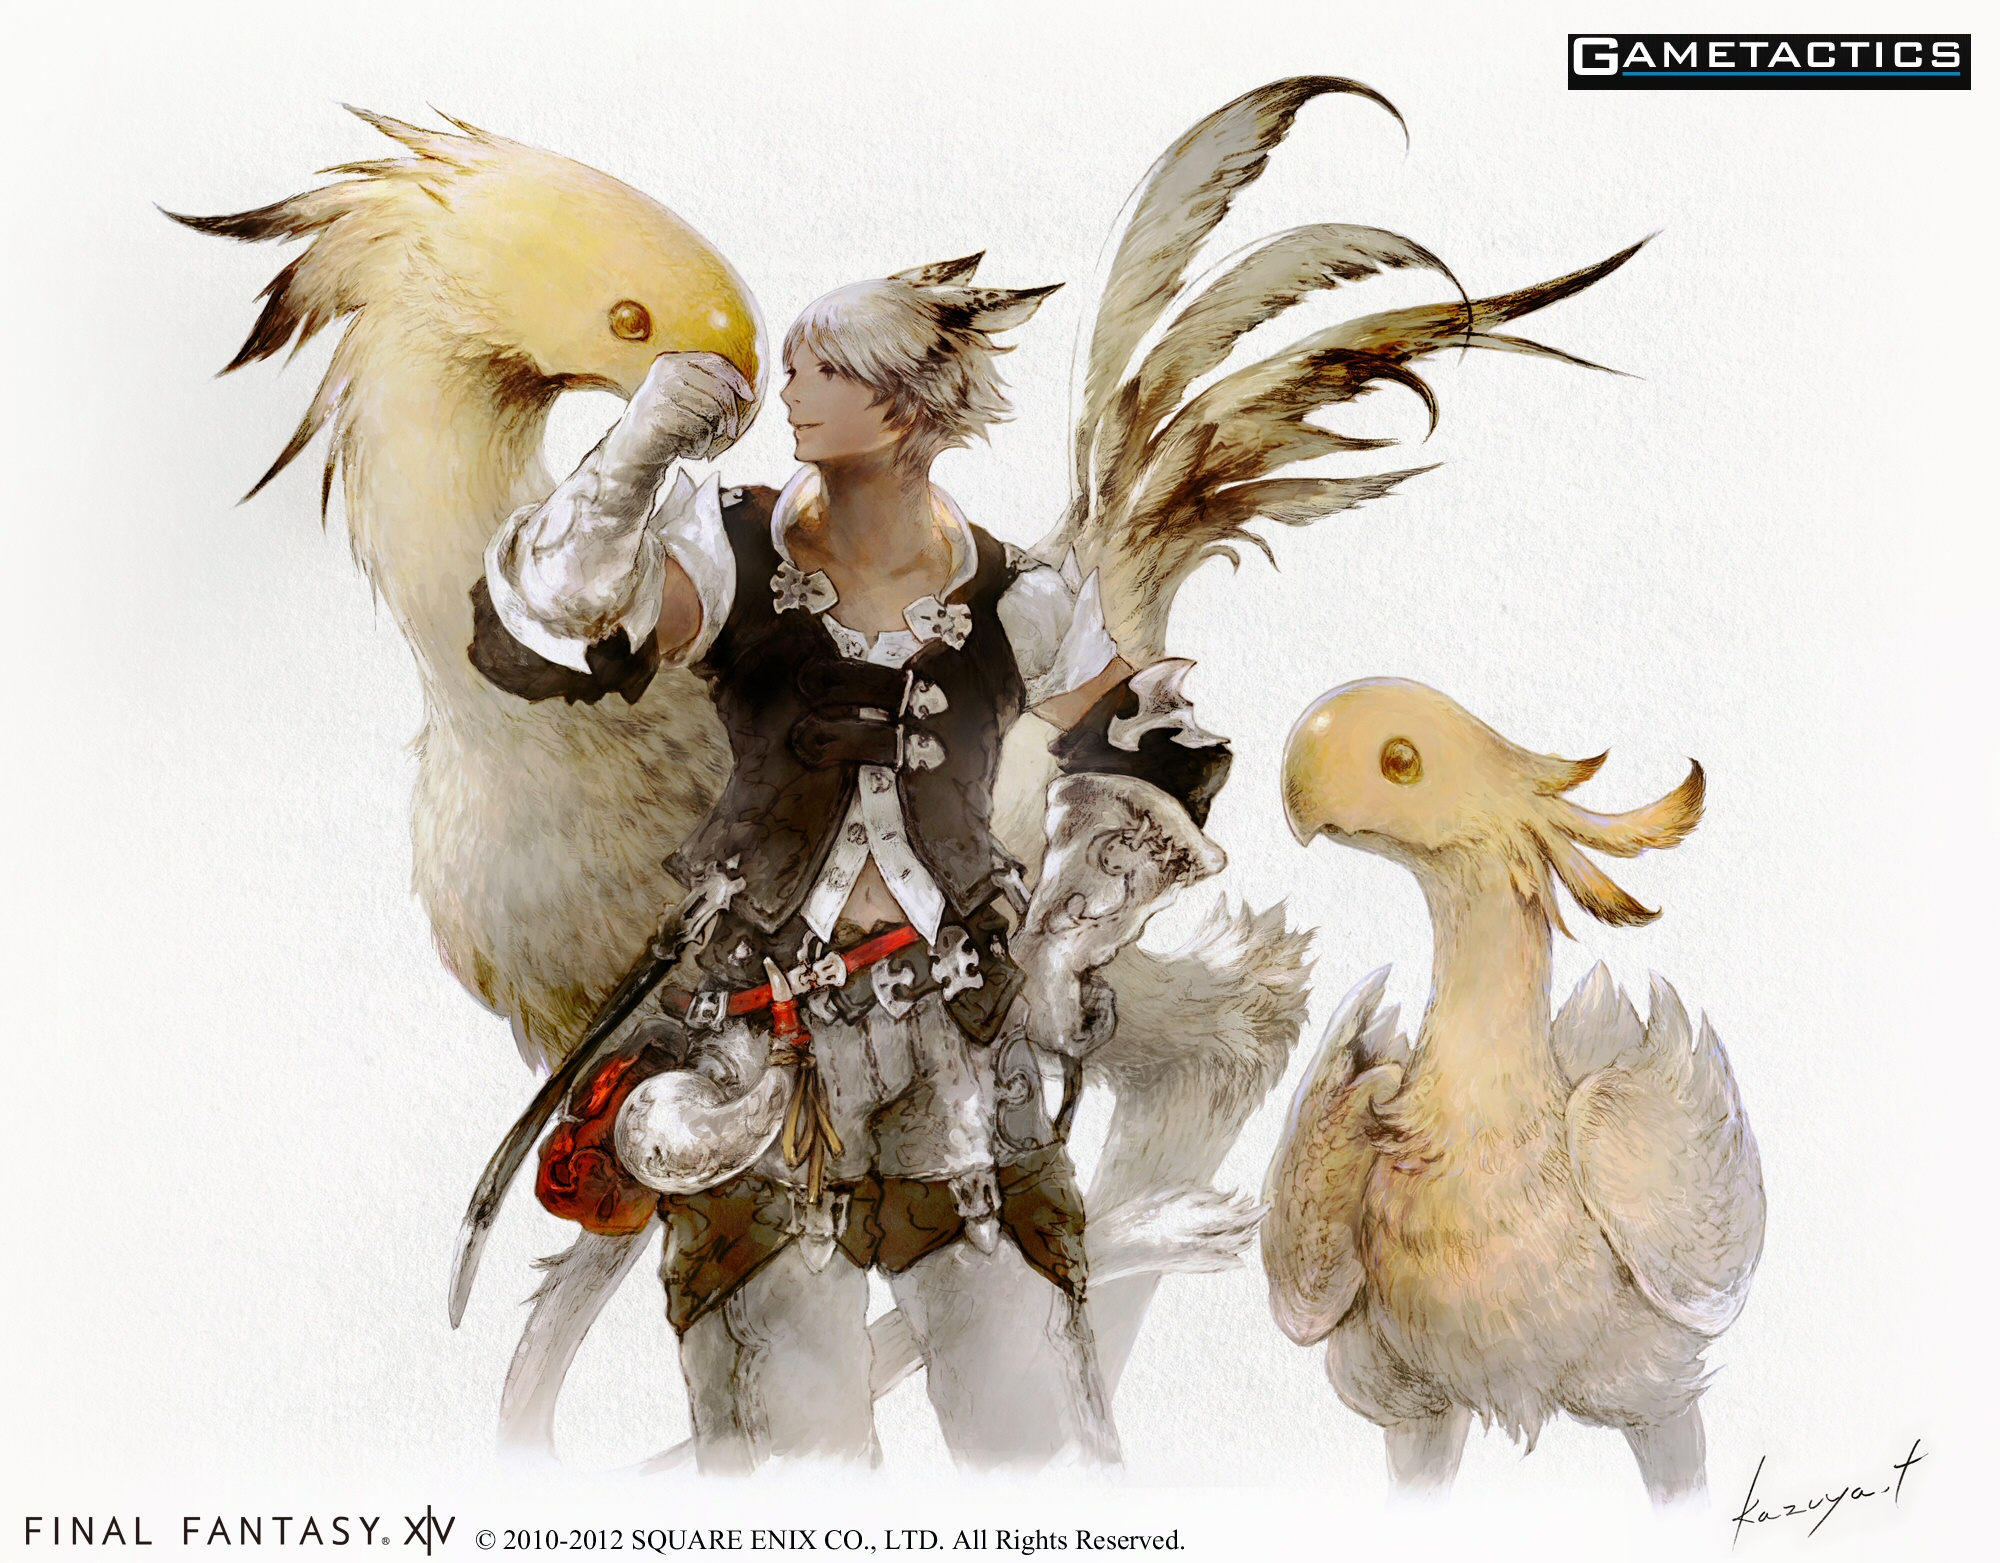 Final Fantasy Xiv Version 2 0 Hyur And Miqo Te Race Revealed Gametactics Com